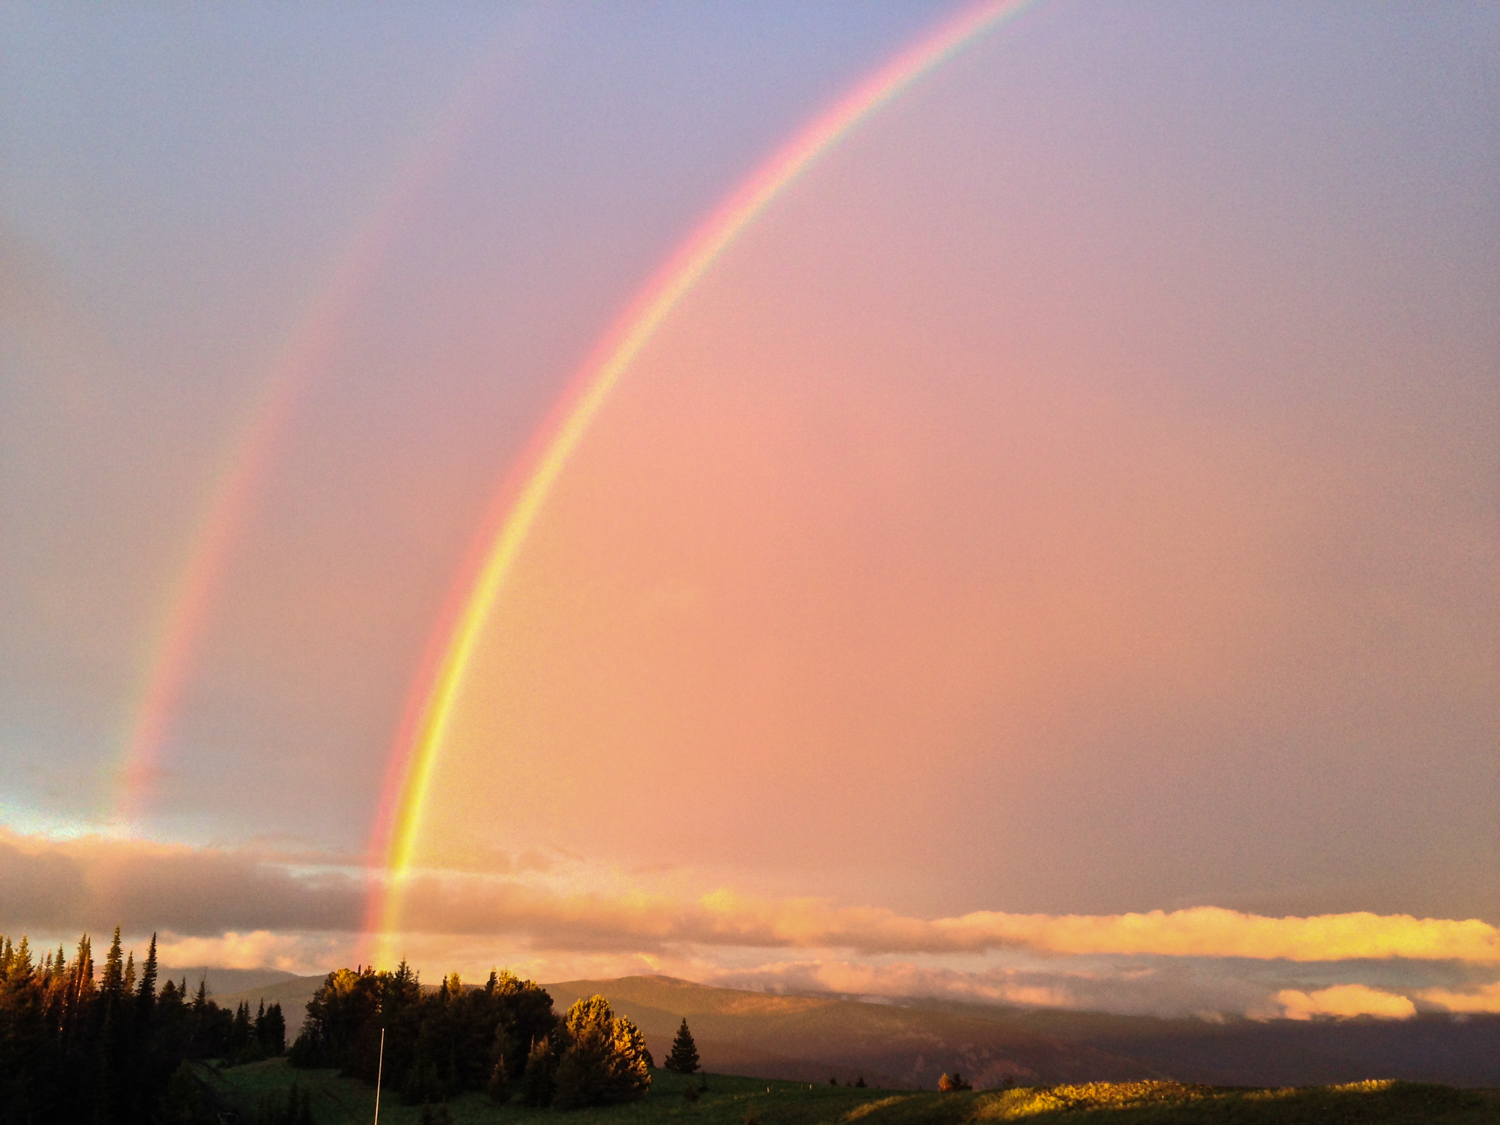 Did I mention the rainbows after brief rain showers